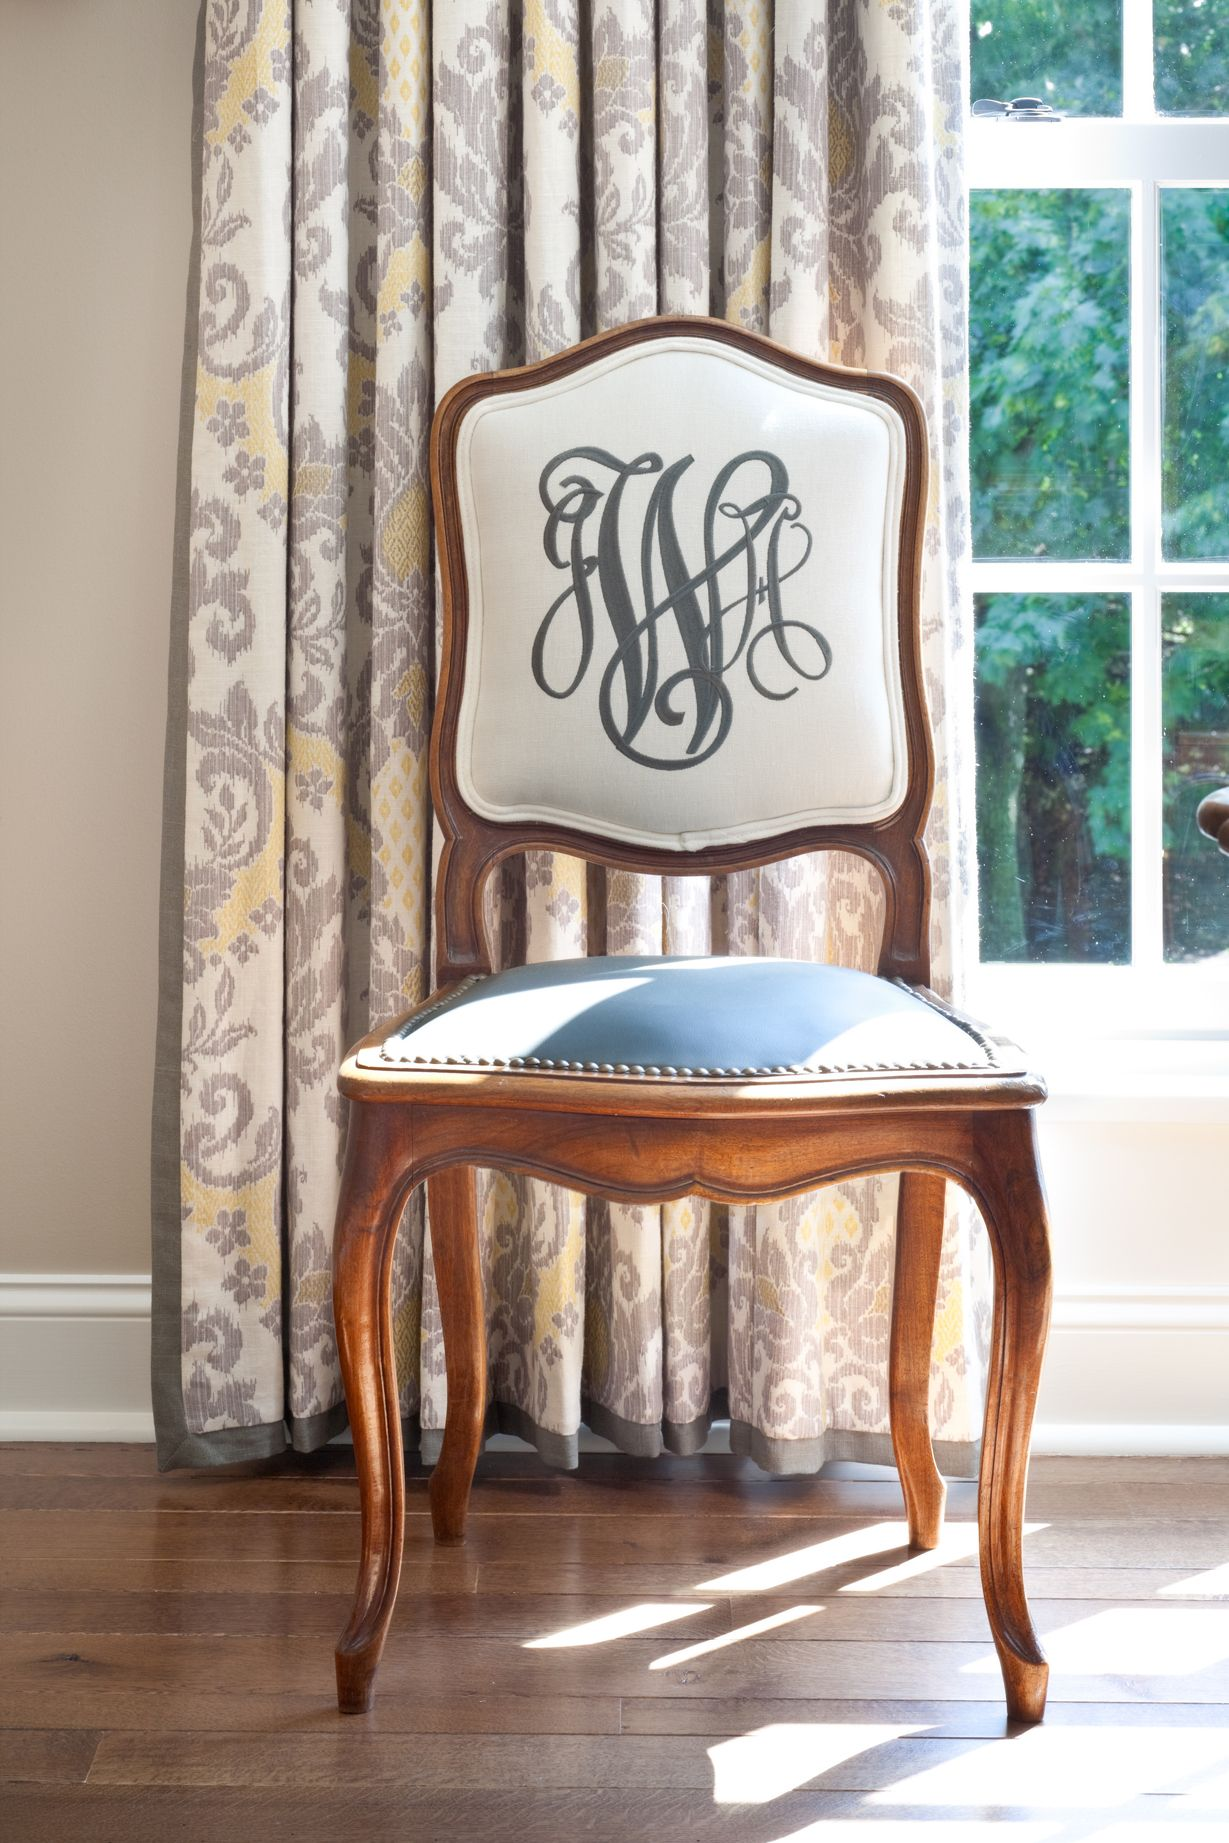 Monogram Chair Monogram Chair Would Love To Have A Matching Set As